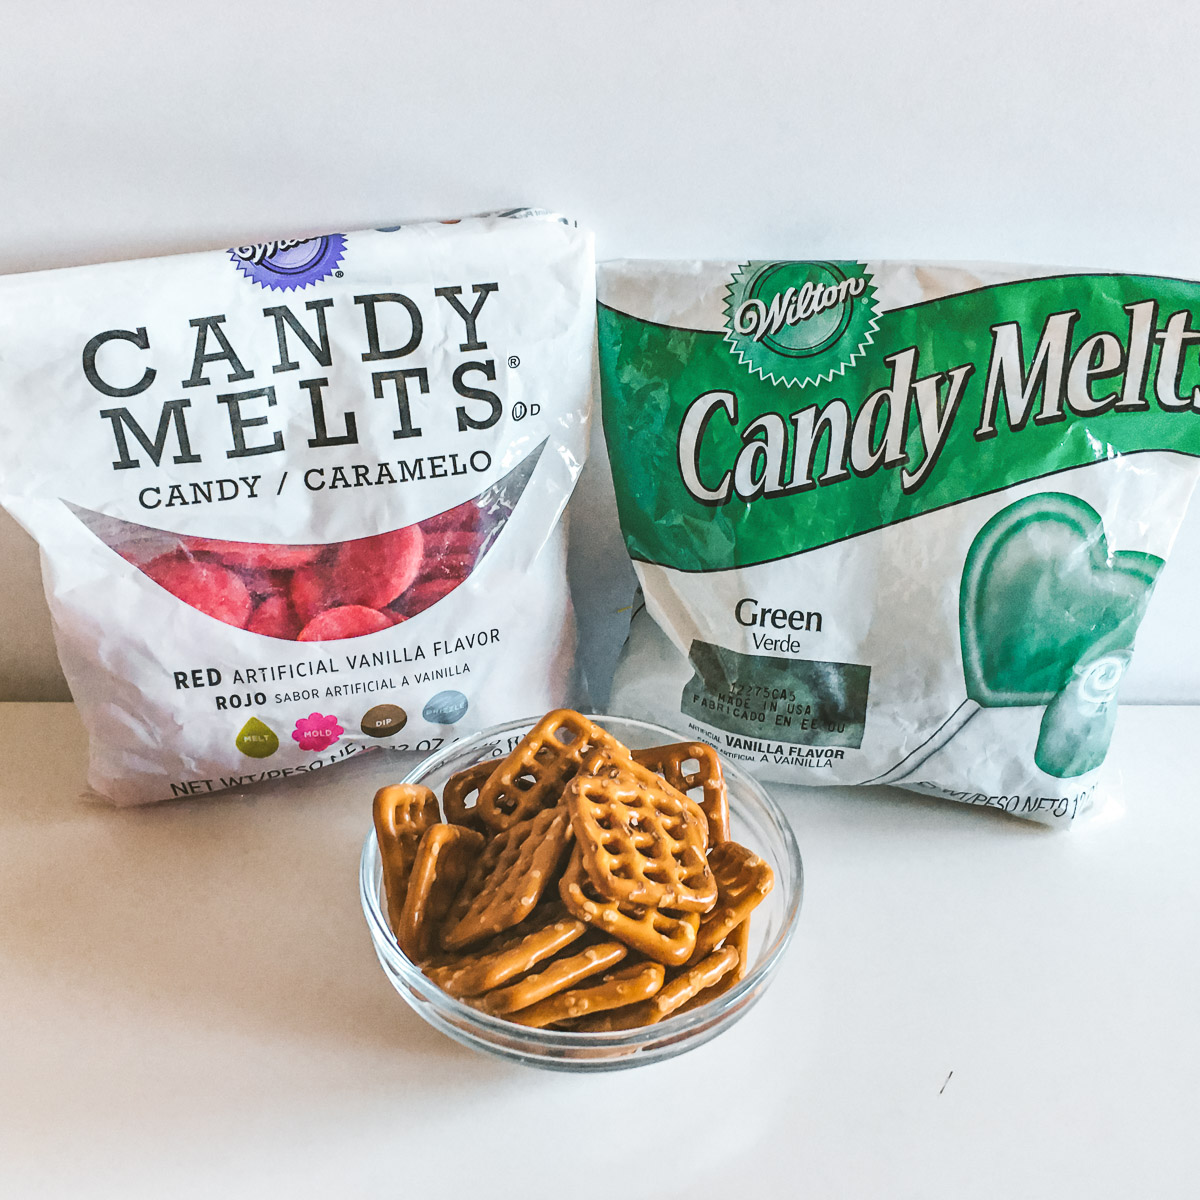 square pretzels and 2 bags of candy melts